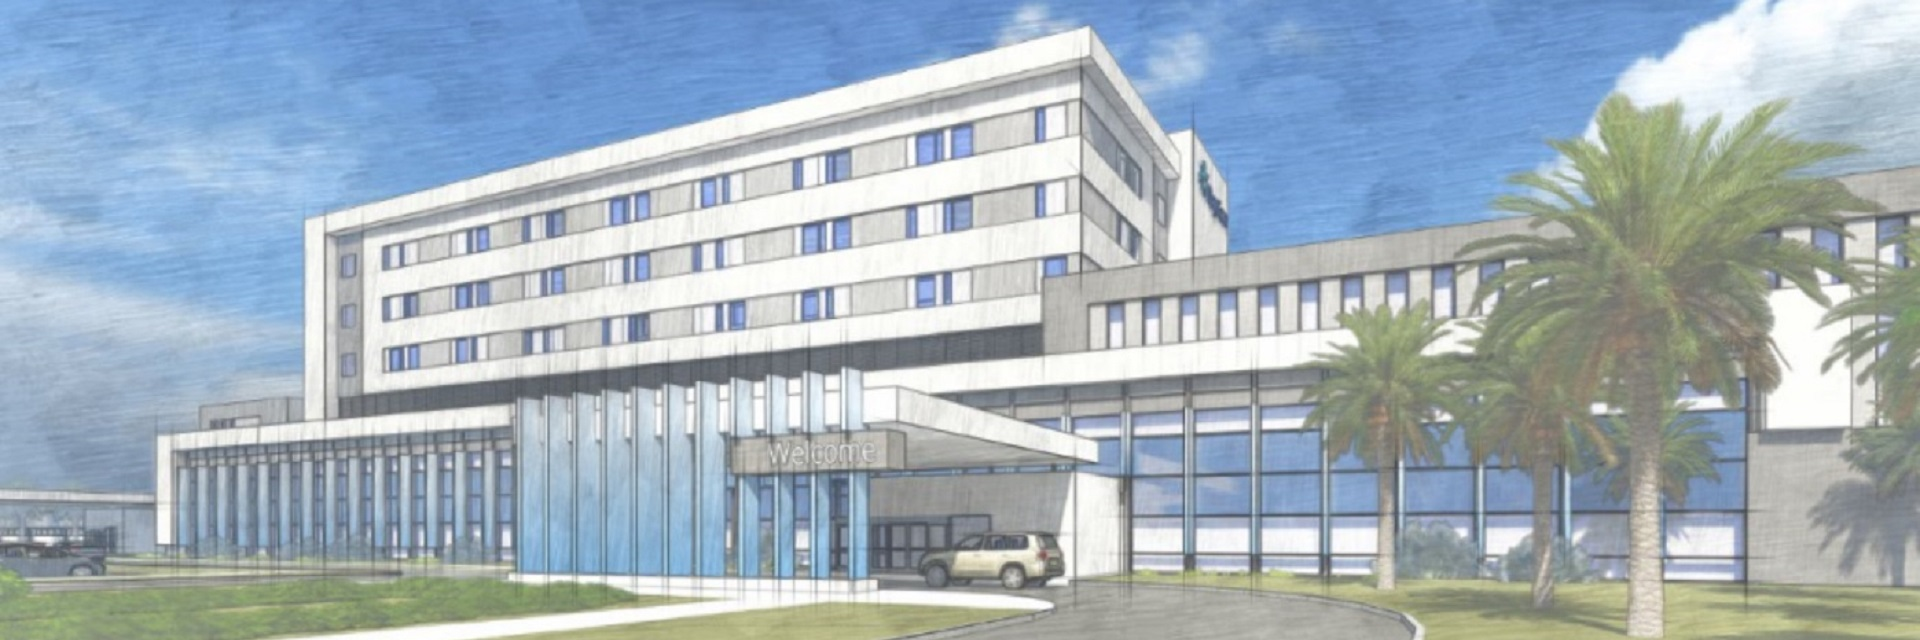 Artist's rendering of the new BayCare hospital that will be built in Wesley Chapel, Florida